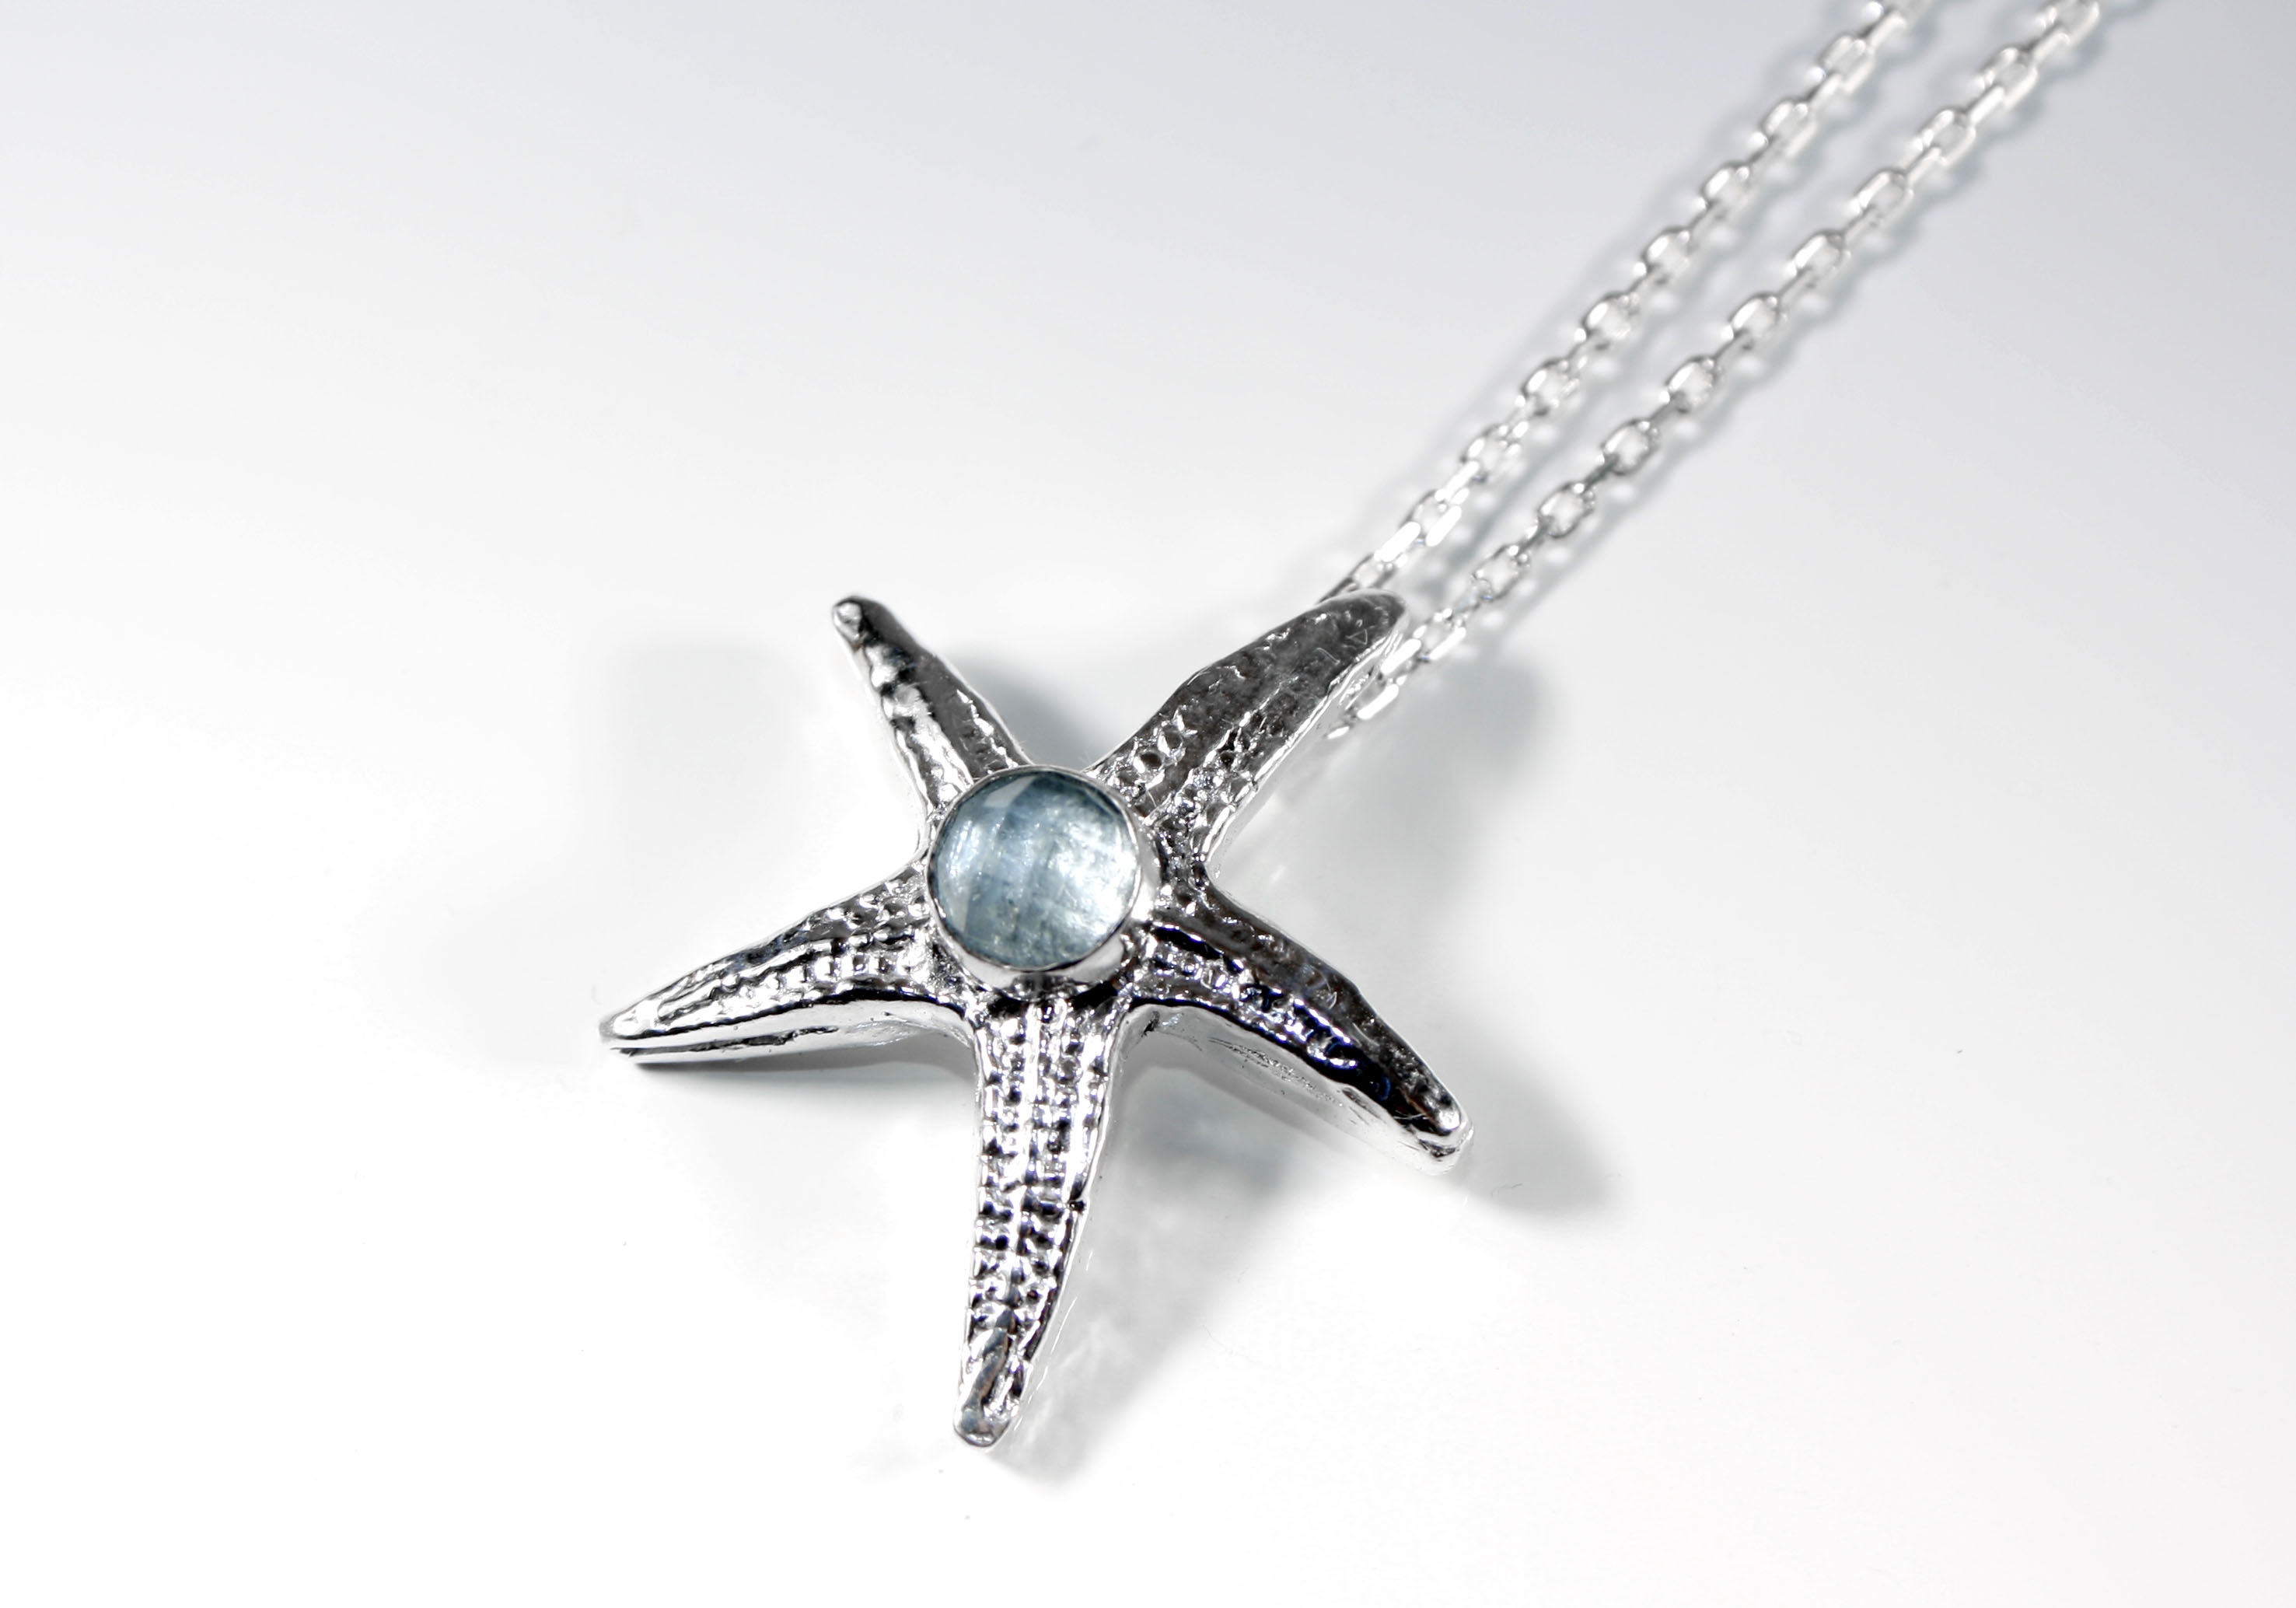 Starfish pendant with faceted aquamarine lying close up